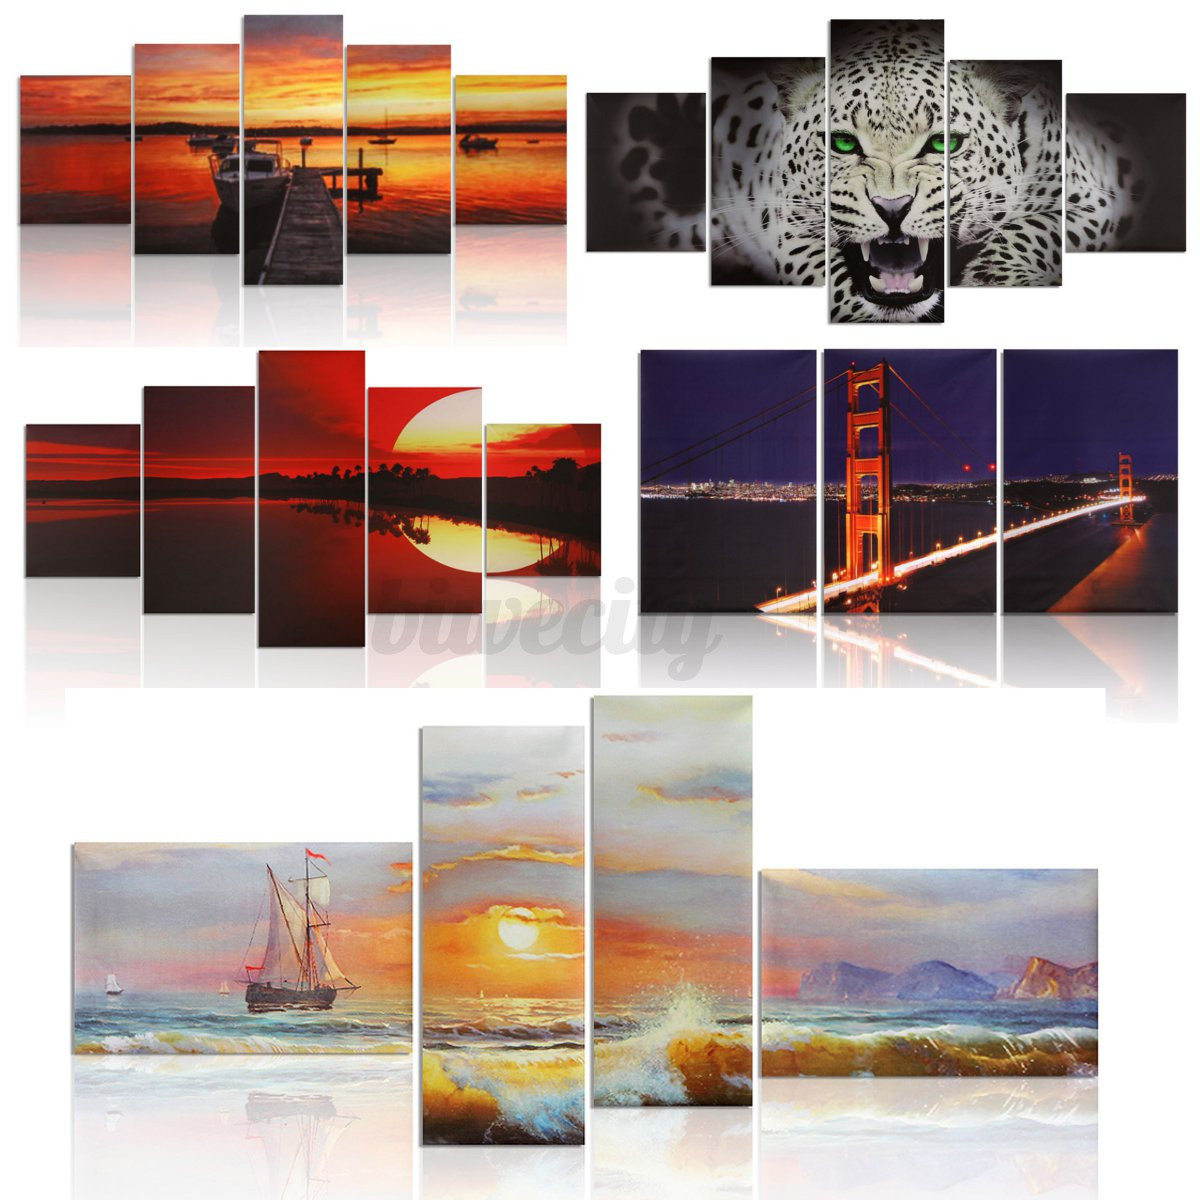 10 types modern abstract picture art canvas prints oil for Different types of abstract art